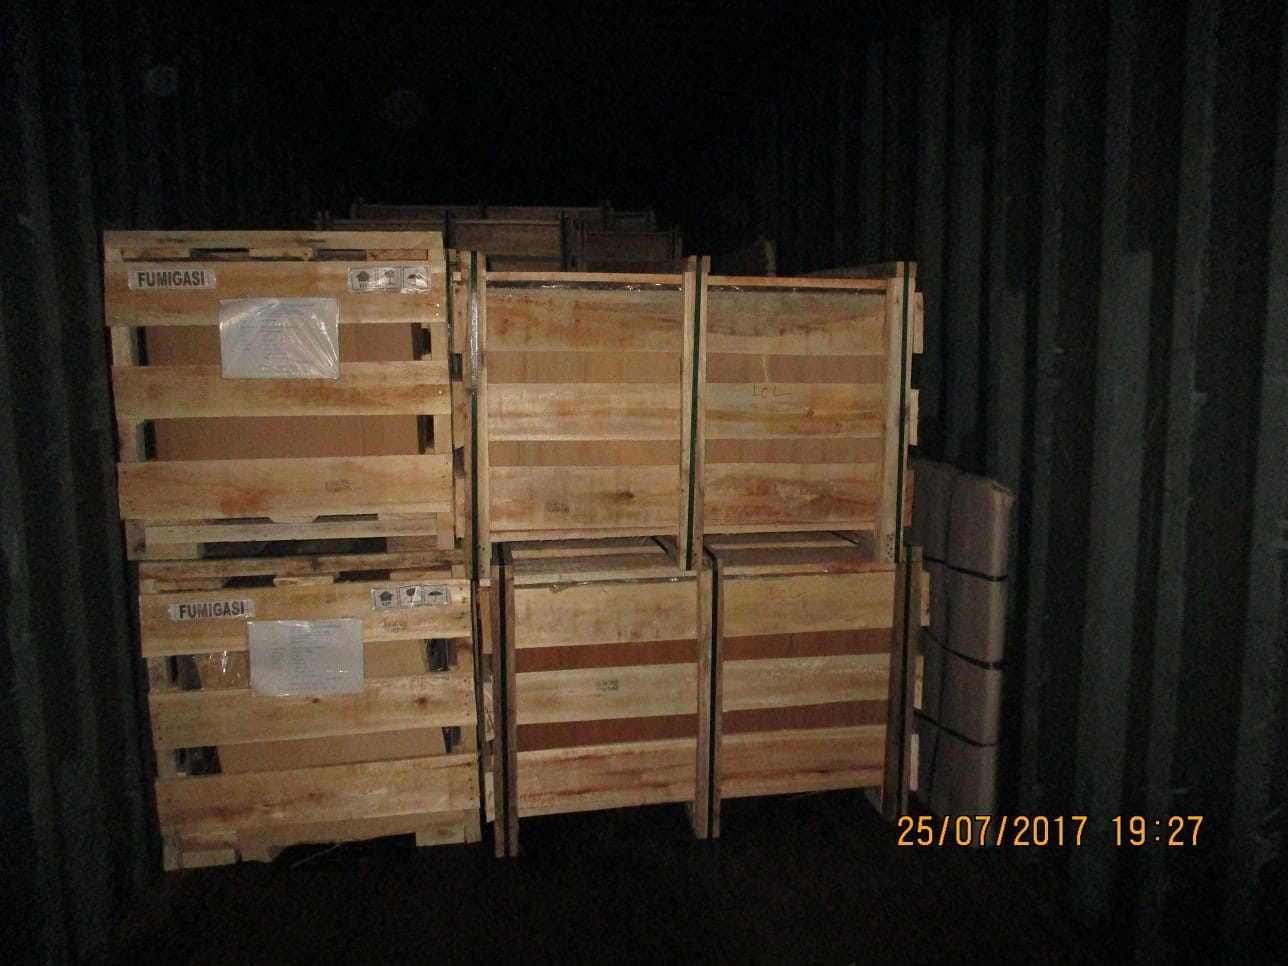 Furniture from Bali to ship